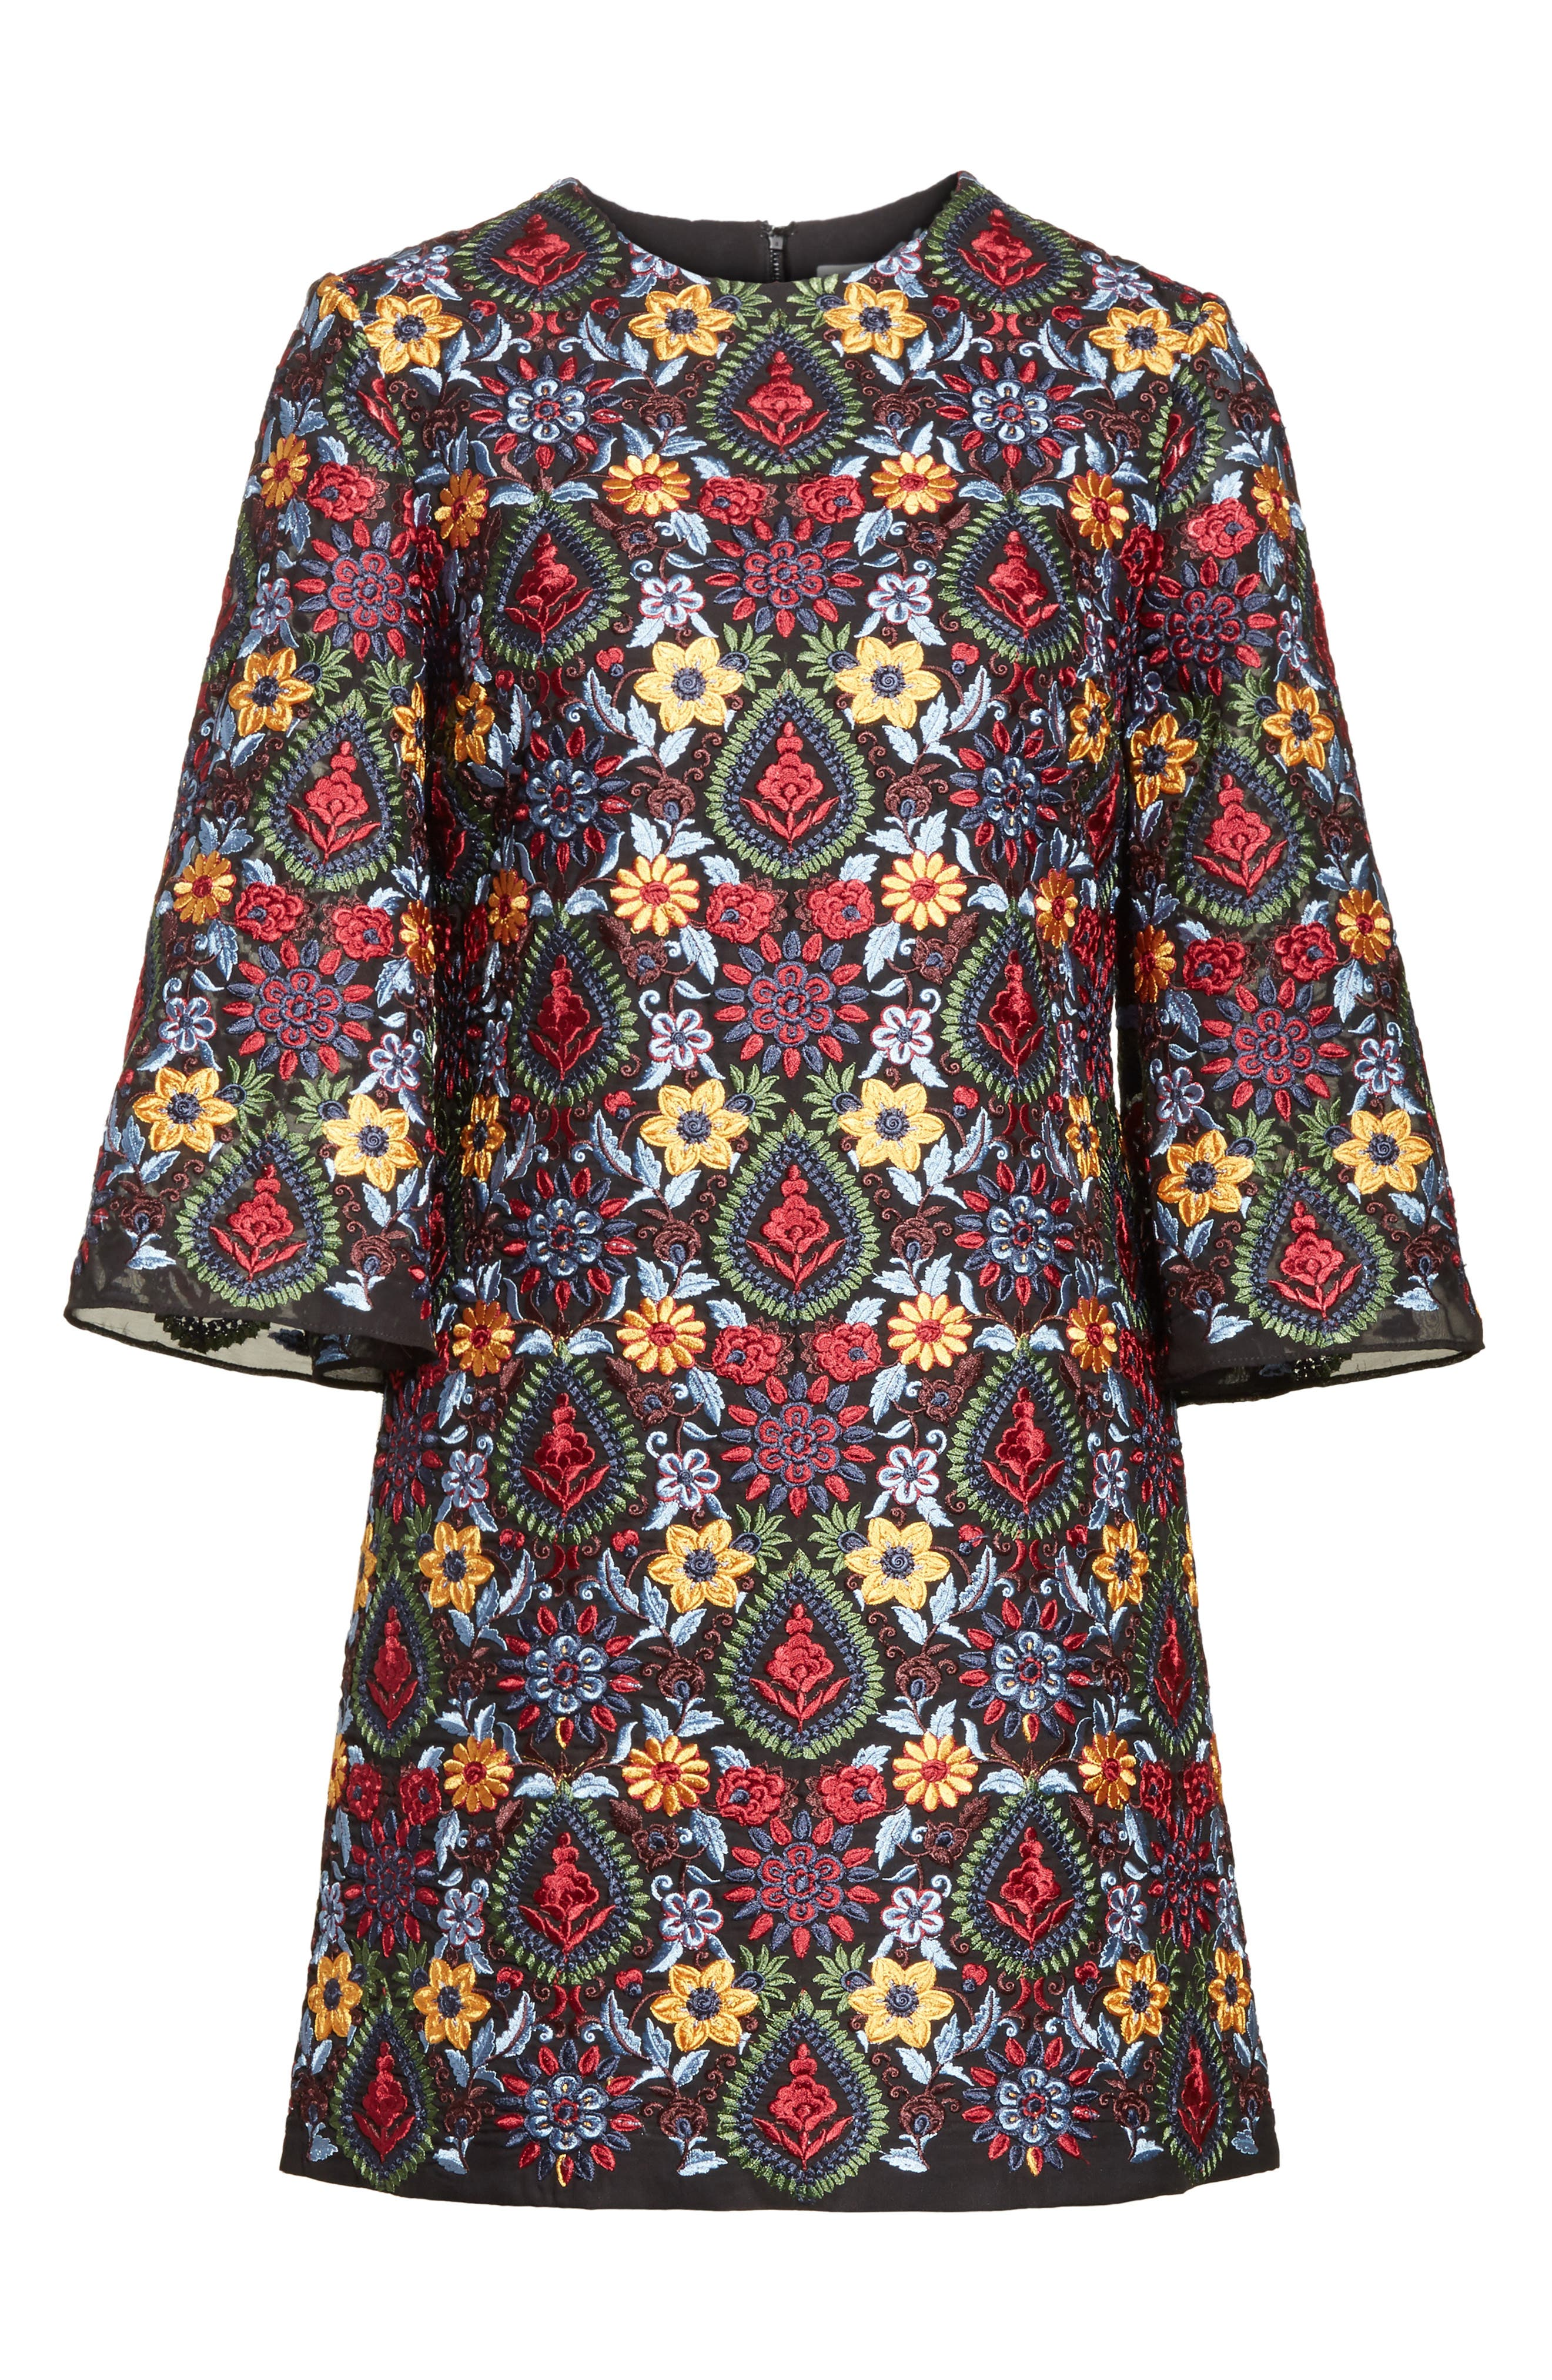 Coley Embroidered Bell Sleeve Dress,                             Alternate thumbnail 6, color,                             408